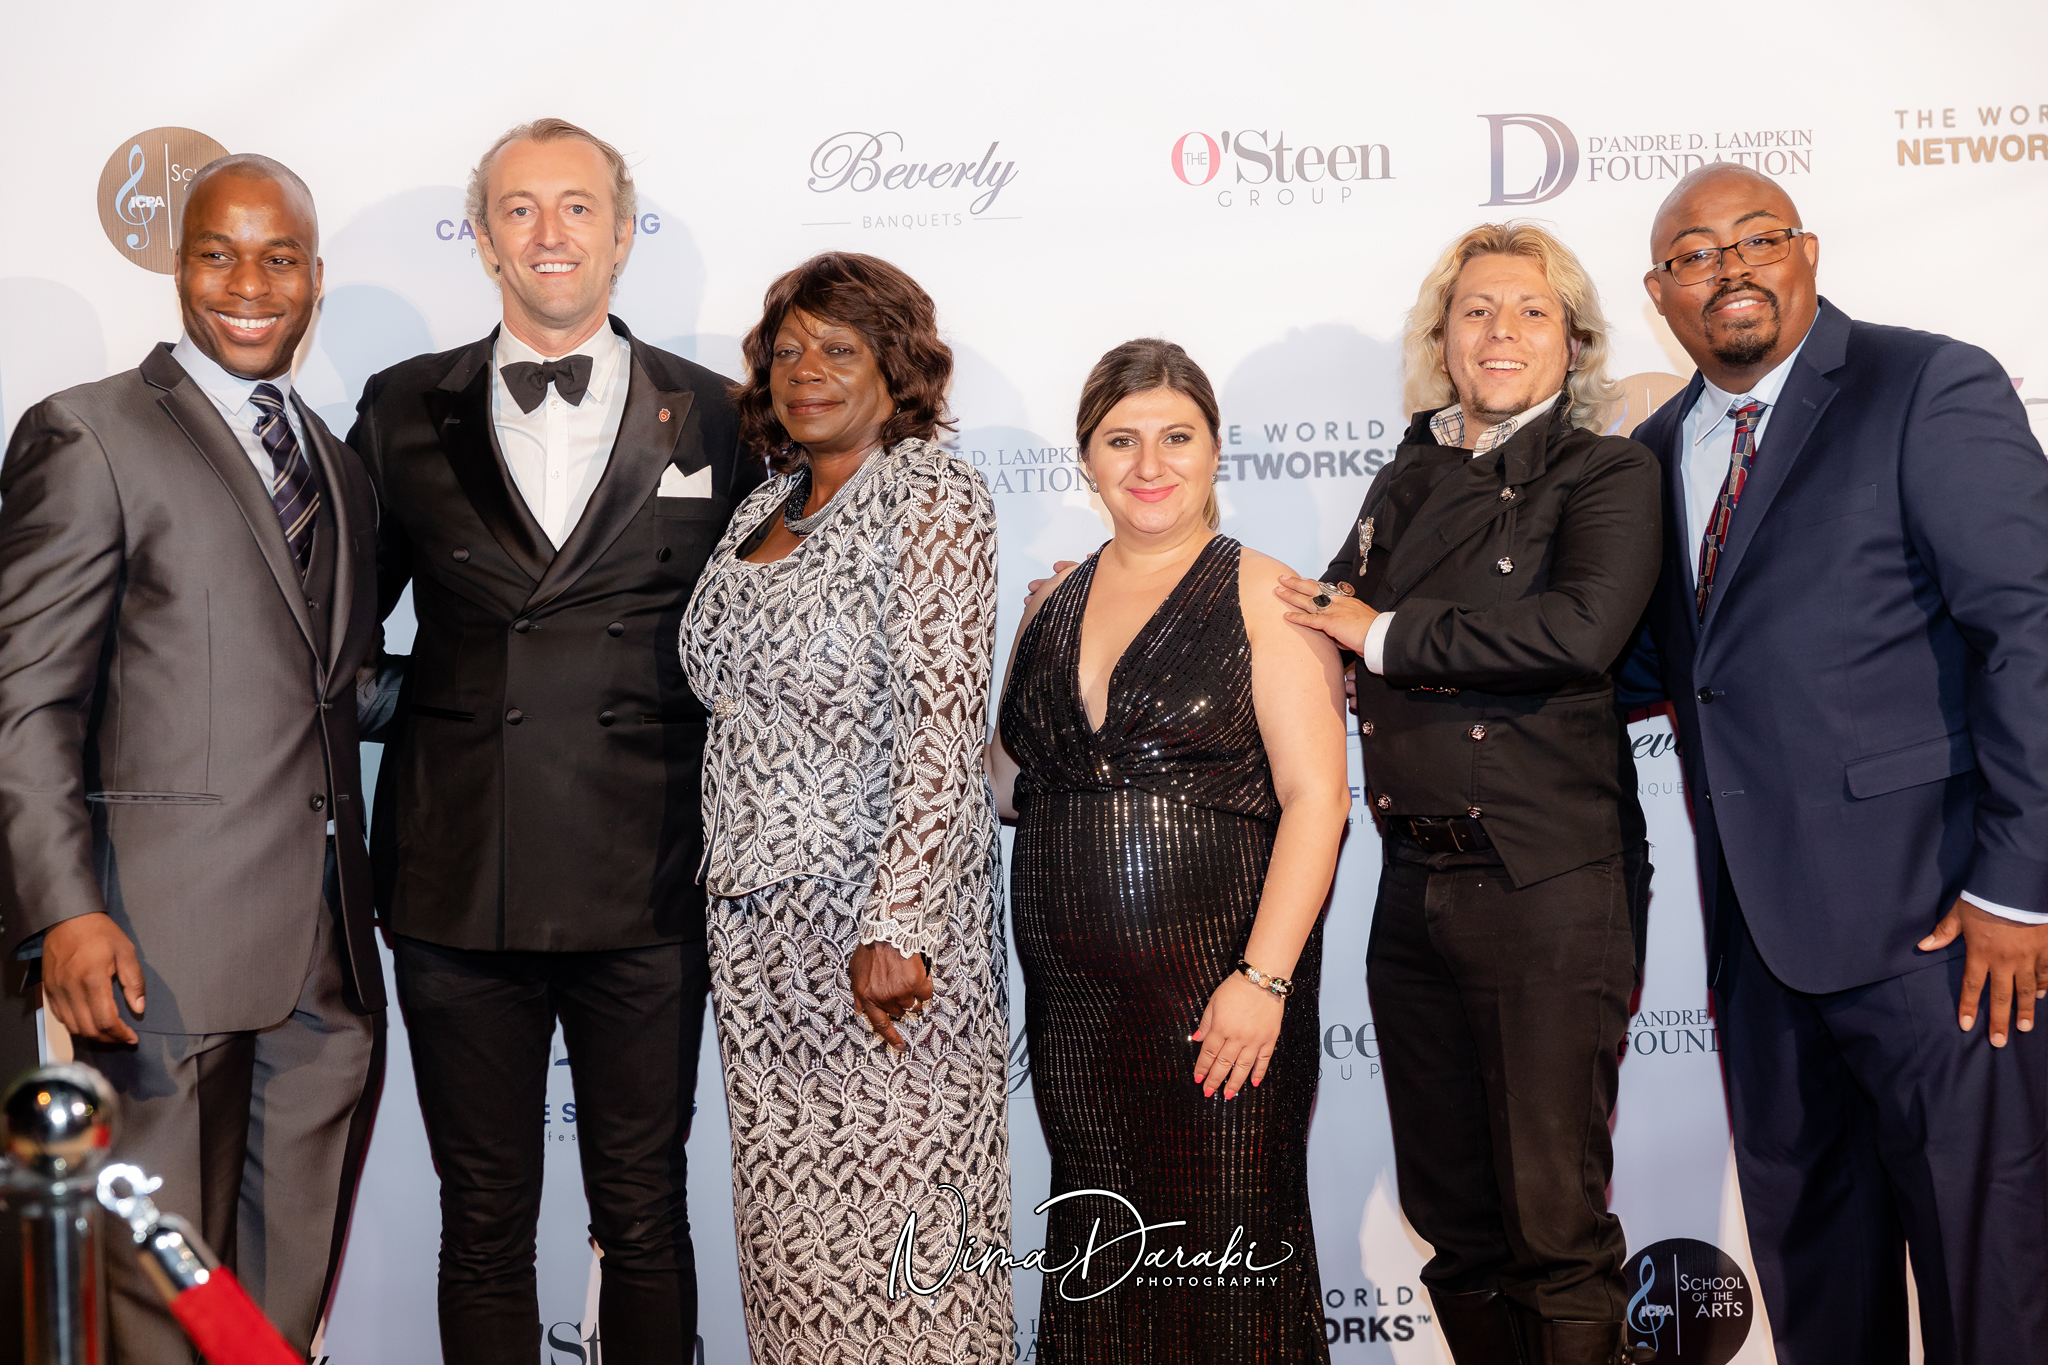 D'Andre Lampkin Foundation Gala Fundraiser Red Carpet